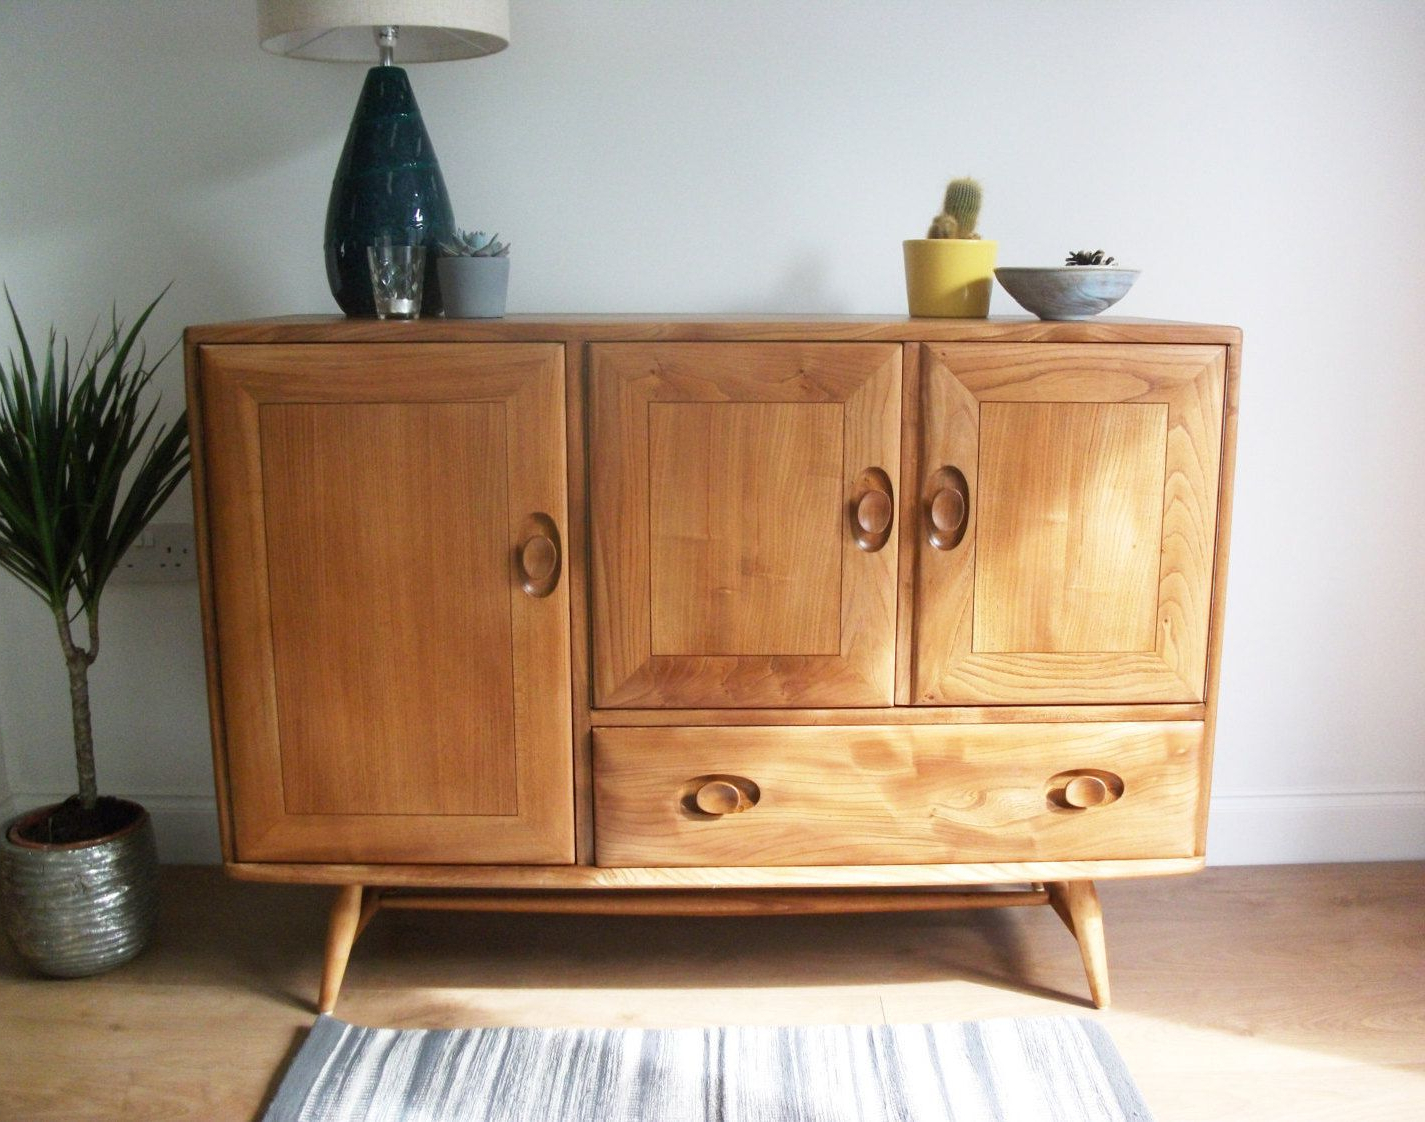 Widely Used Pinmelanie Harrison On A Dining Room At Last!! In 2018 In Reclaimed Elm 91 Inch Sideboards (View 20 of 20)